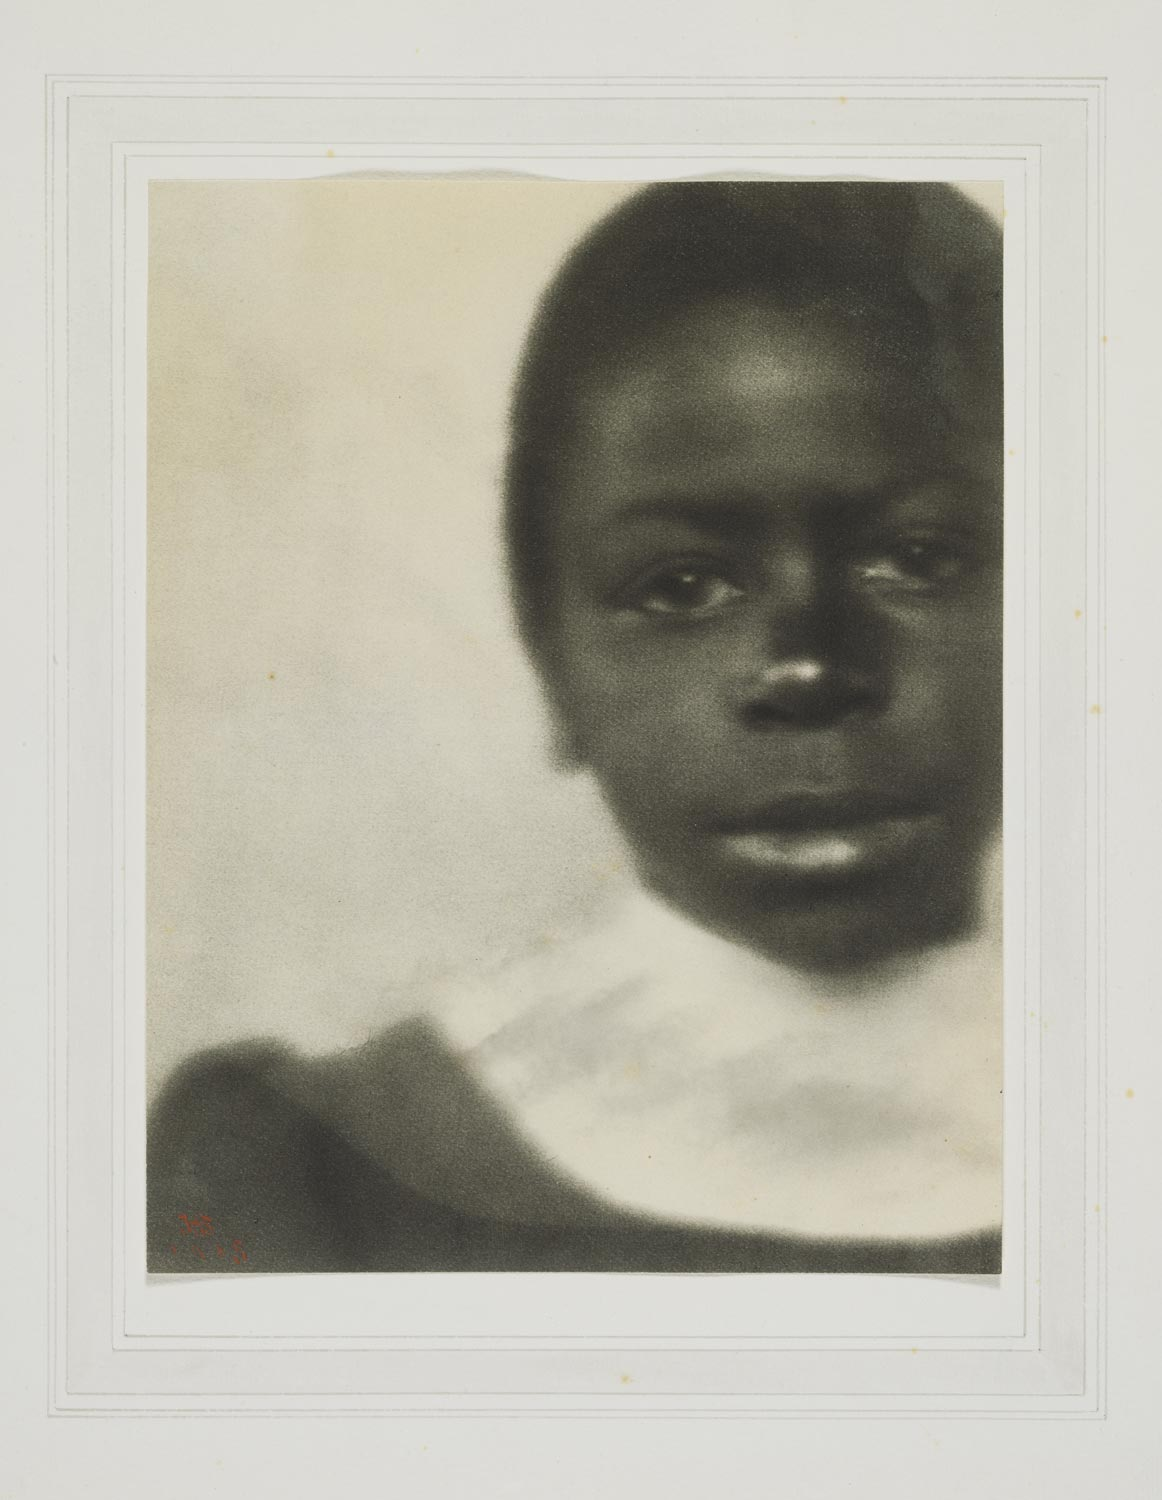 black and white cropped head and shoulders photograph of a young girl